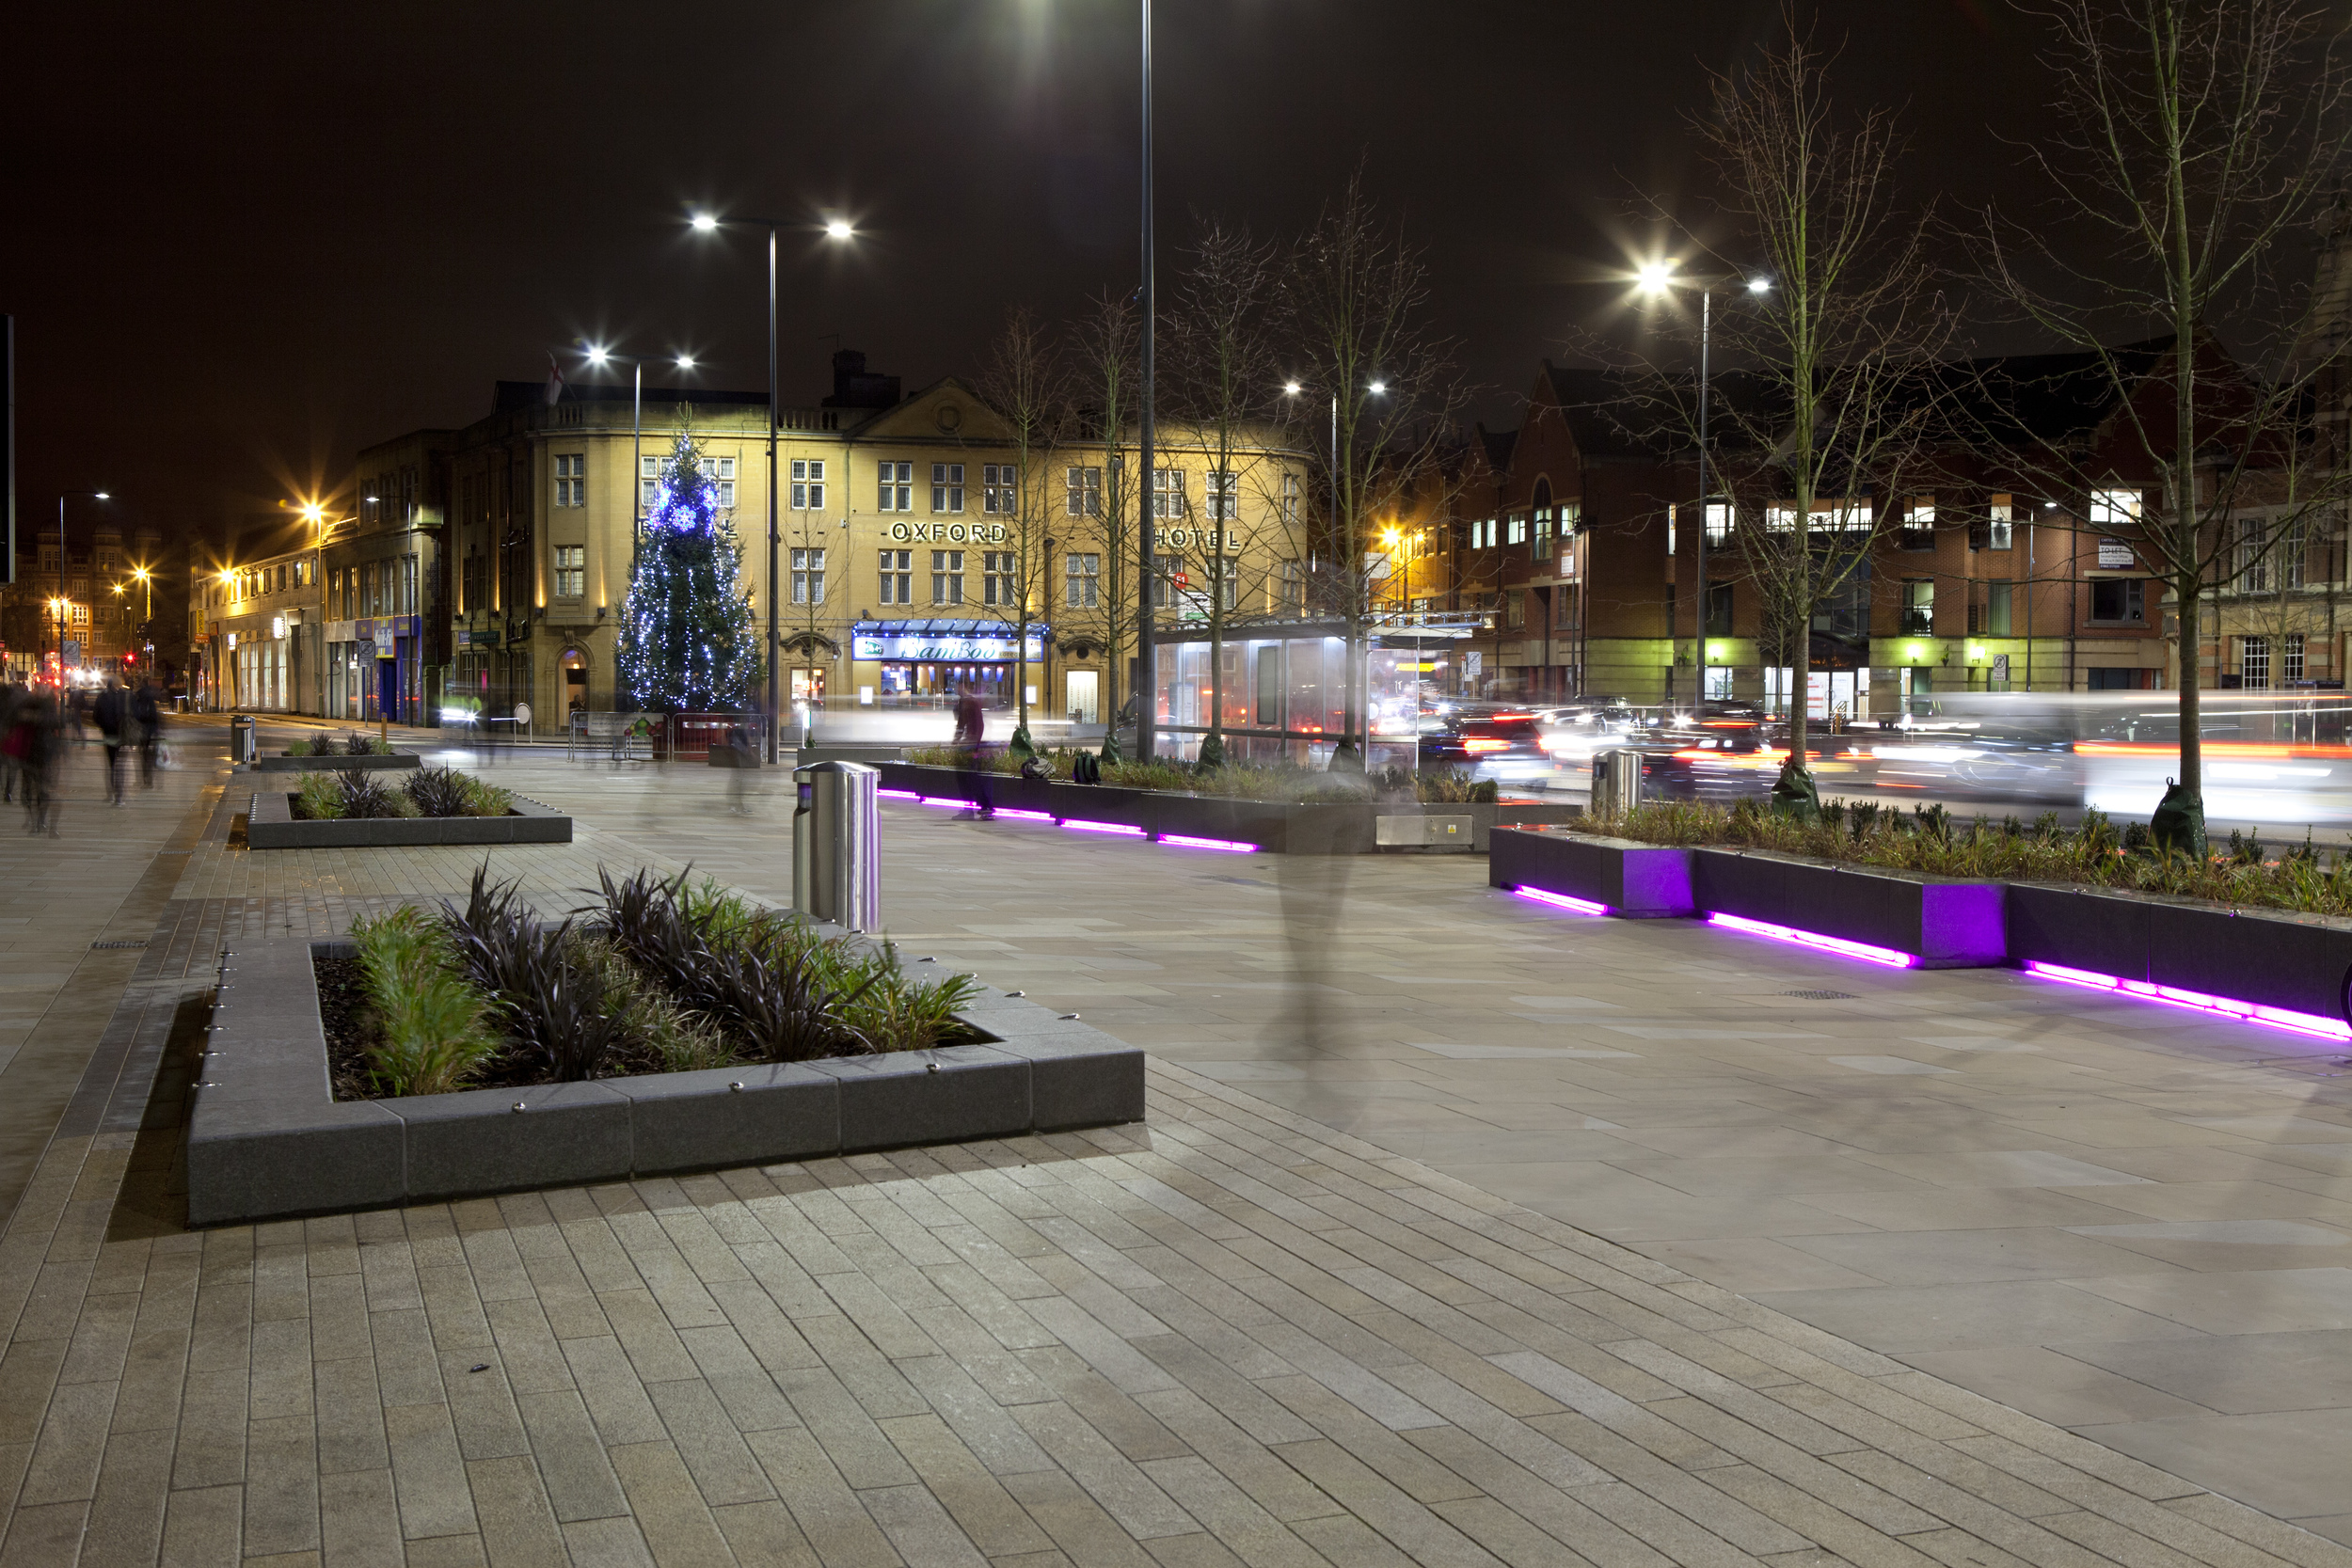 Frideswide Square, Oxford (December 2015)